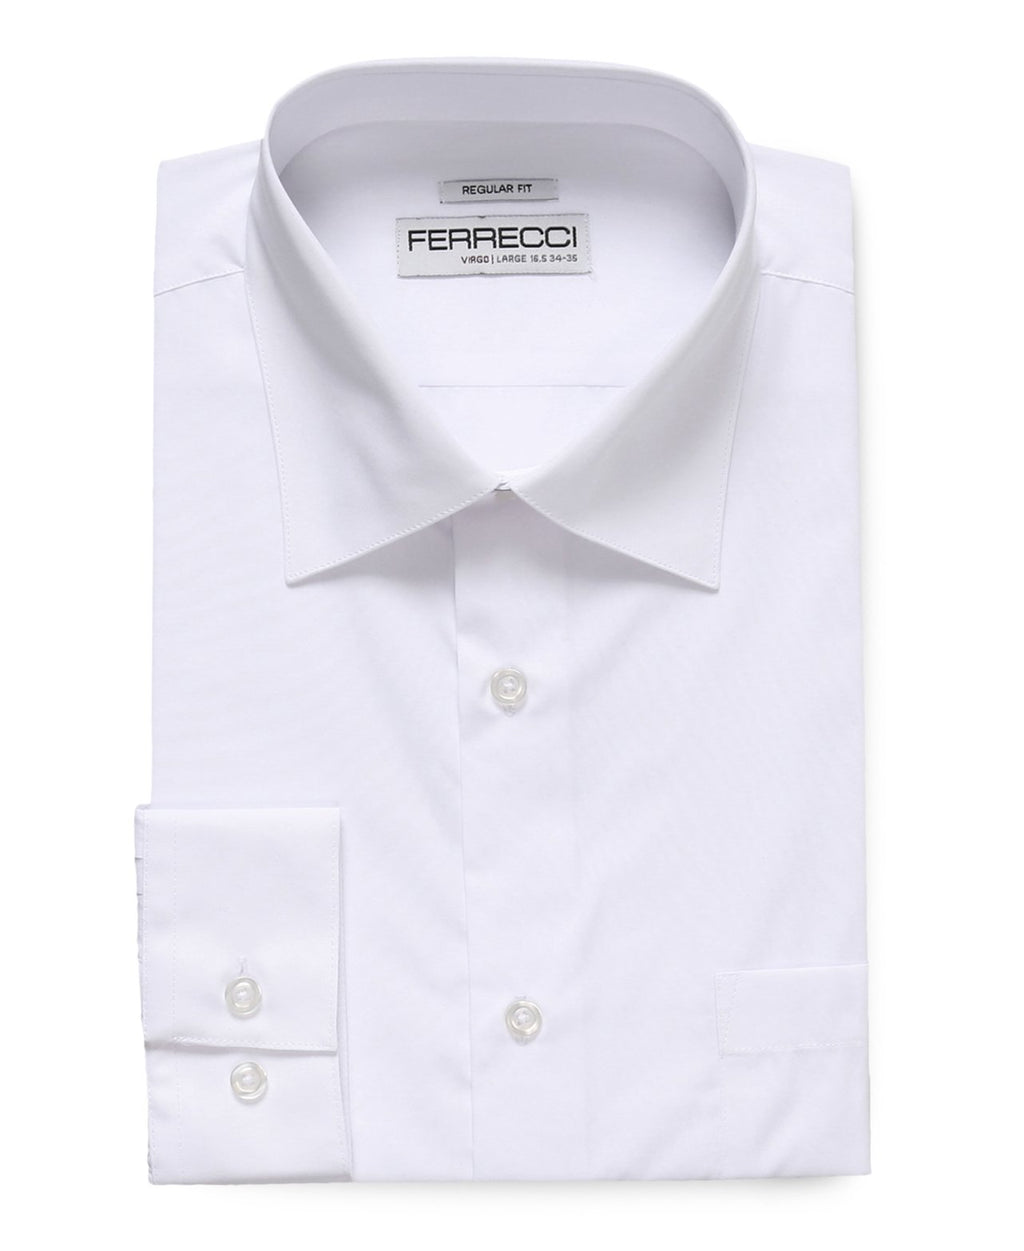 Virgo Snow White Regular Fit Dress Shirt - Giorgio's Menswear